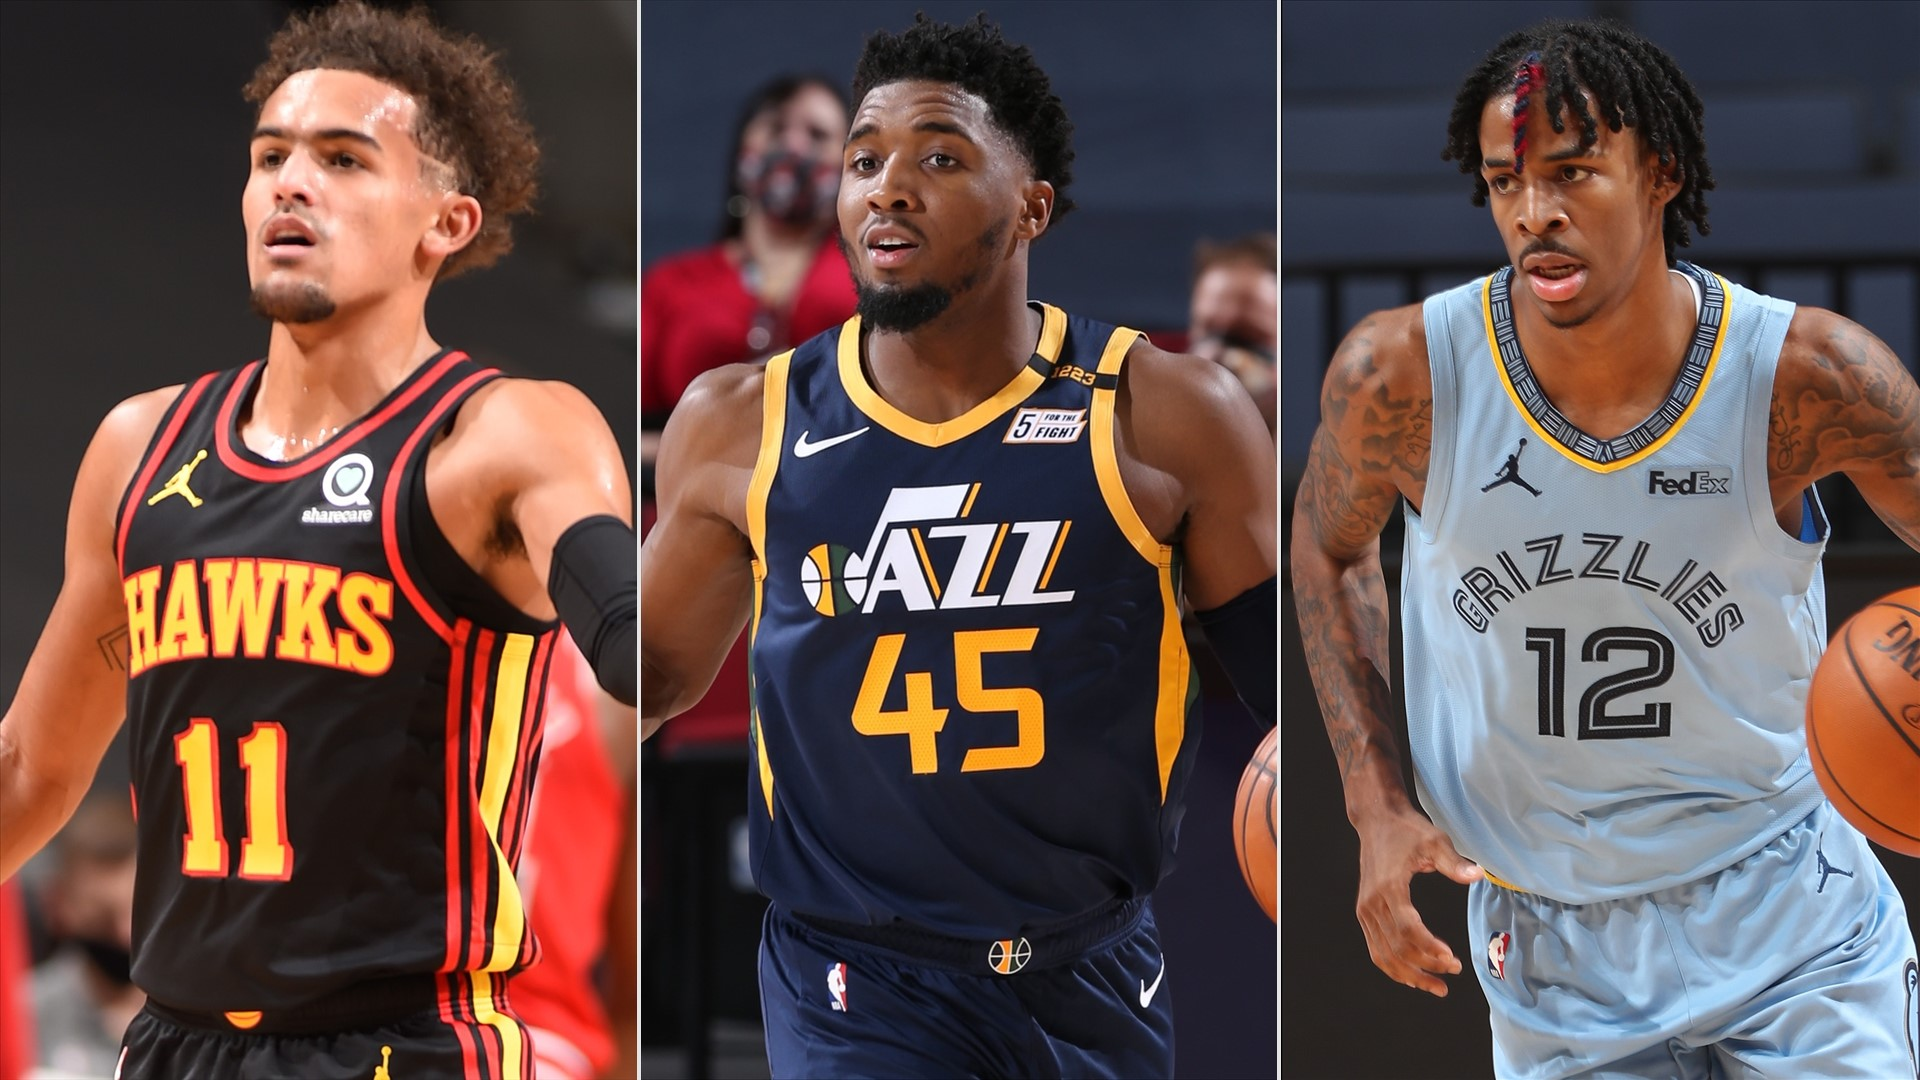 NBA scores, stats, and highlights from Wednesday's busy 12-game slate | NBA.com Canada | The official site of the NBA